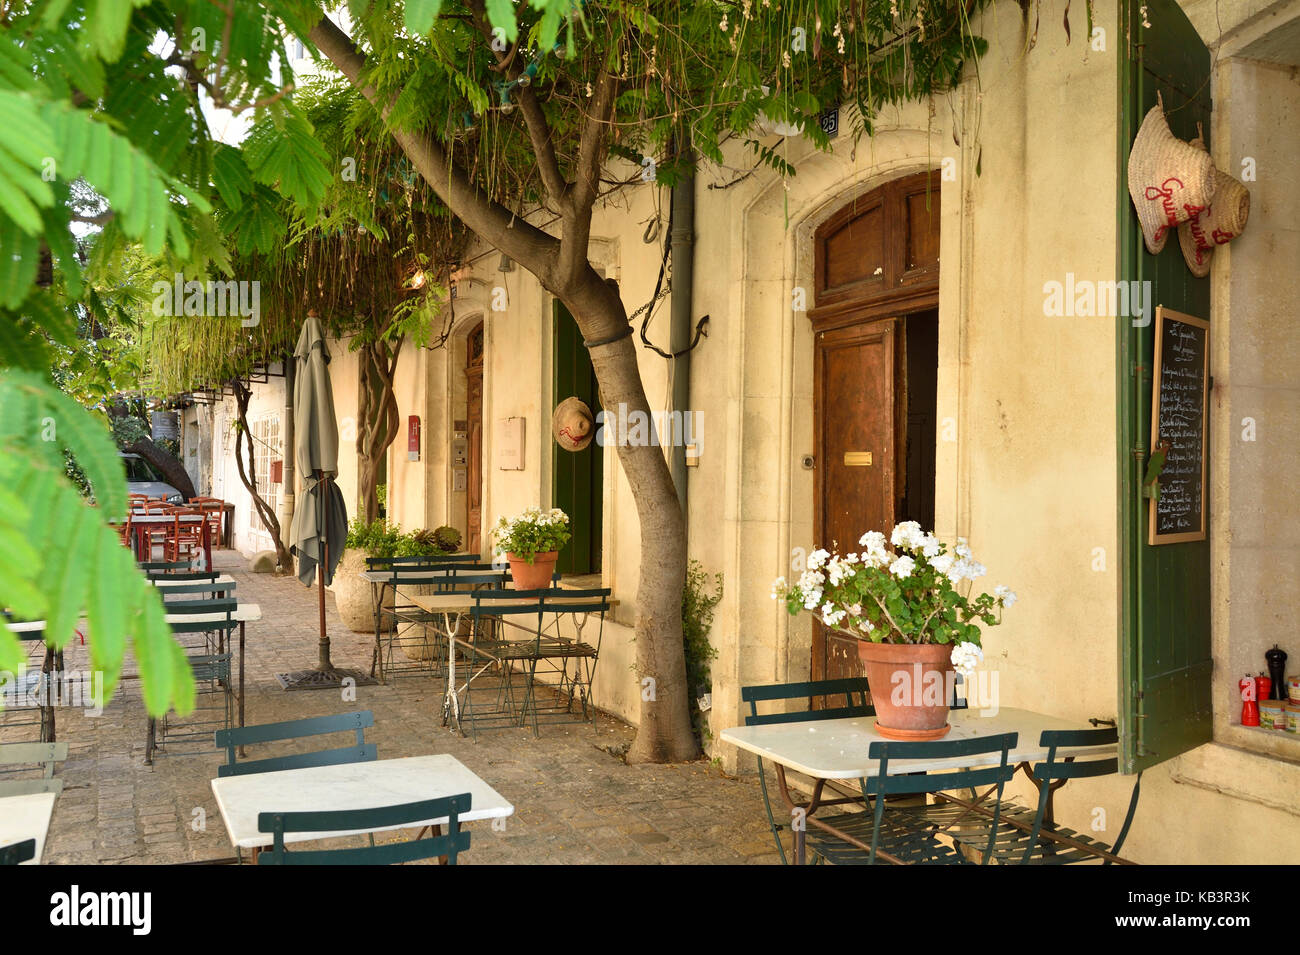 France, Gard, Aigues-Mortes, inside the medieval city, pedestrianized street - Stock Image